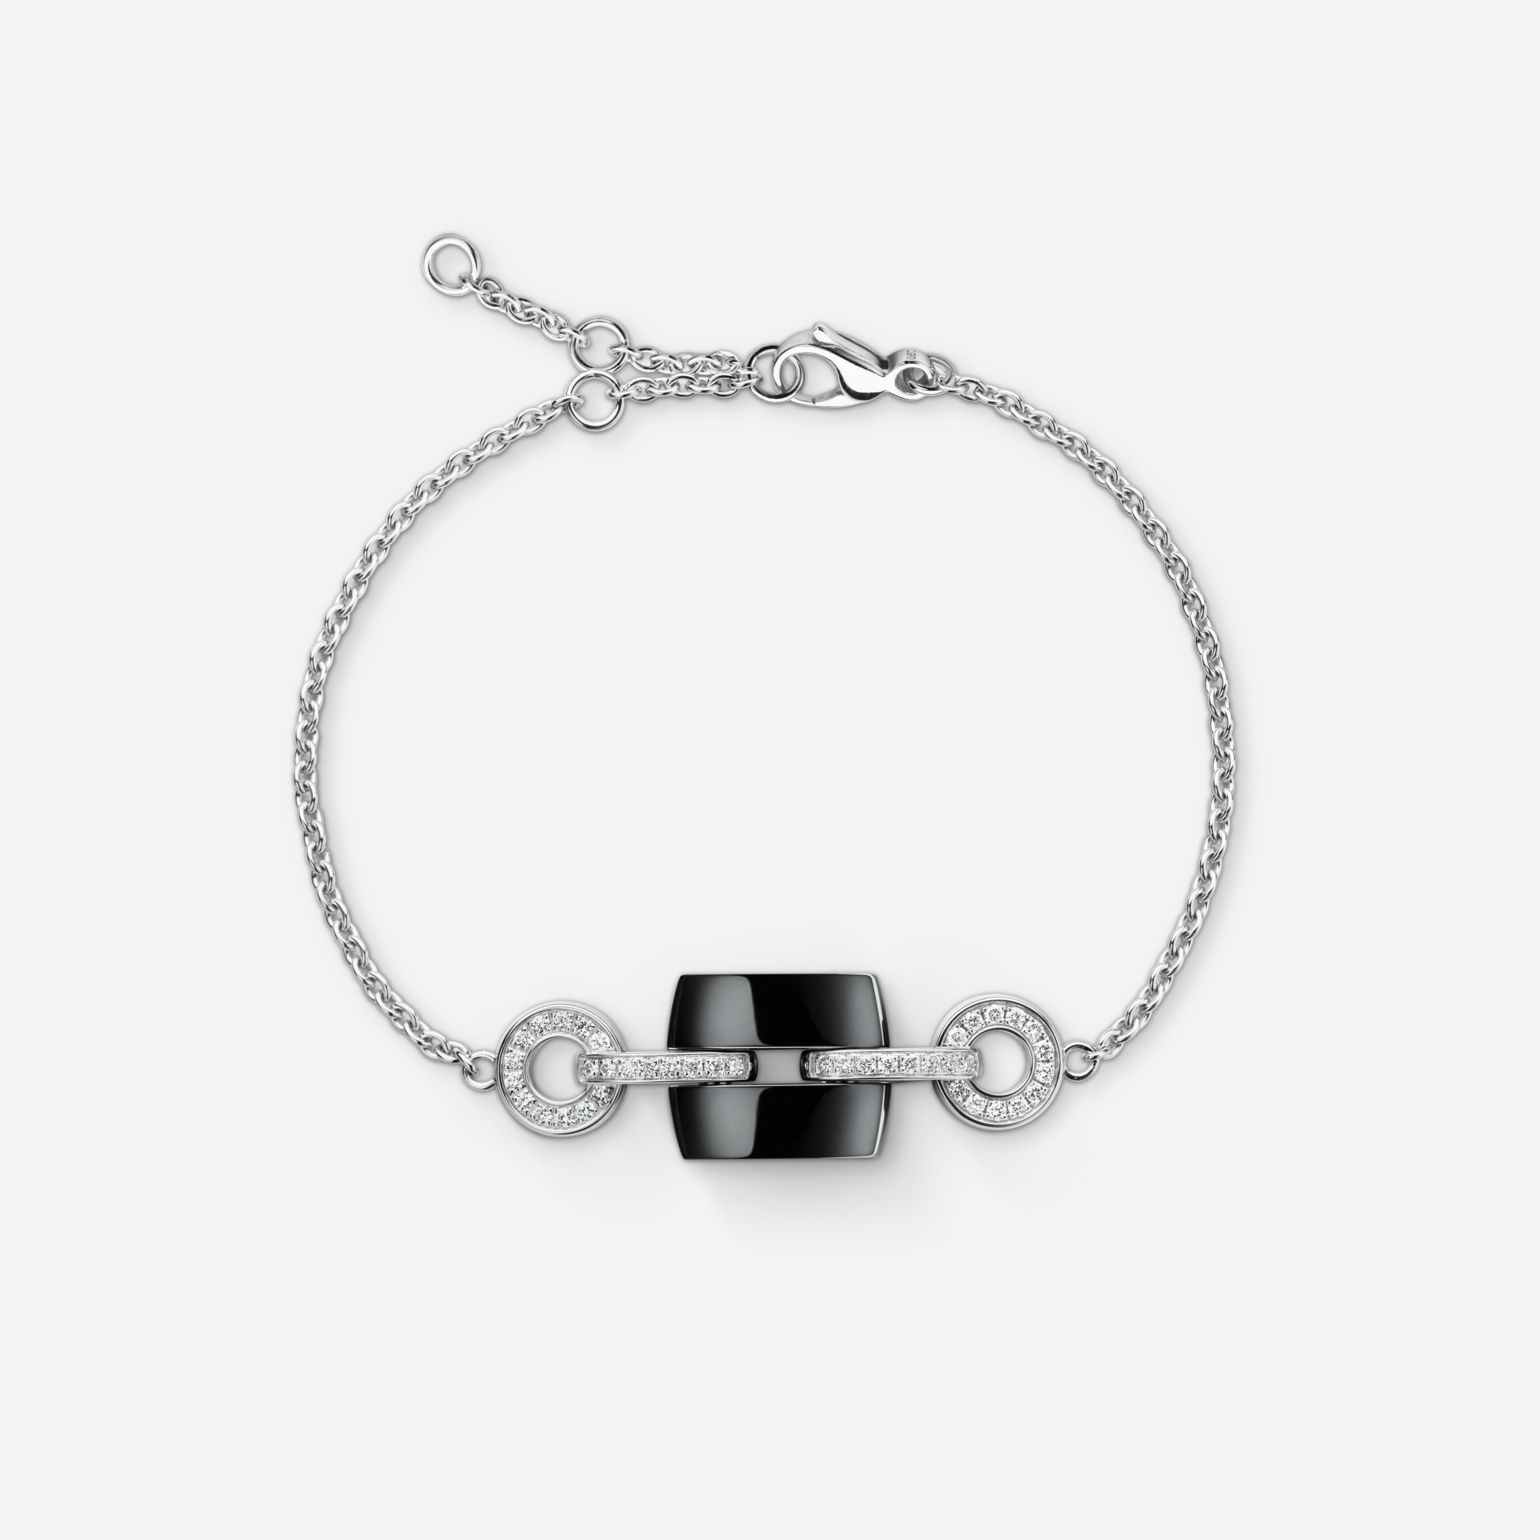 Ultra Bracelet Ultra bracelet in black ceramic, 18K white gold and diamonds